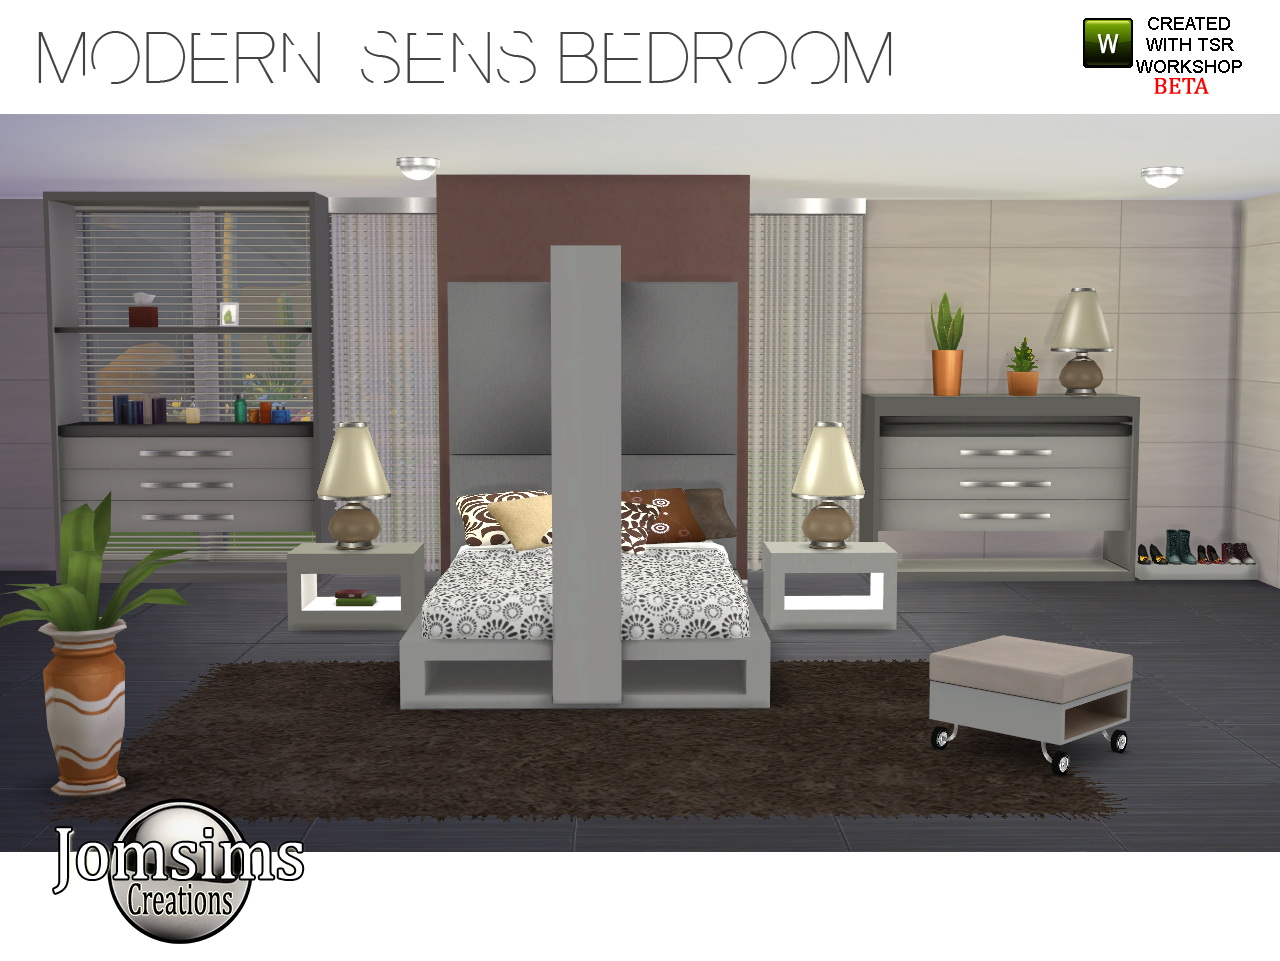 Sims 4 Furniture Downloads 187 Sims 4 Updates 187 Page 3 Of 123